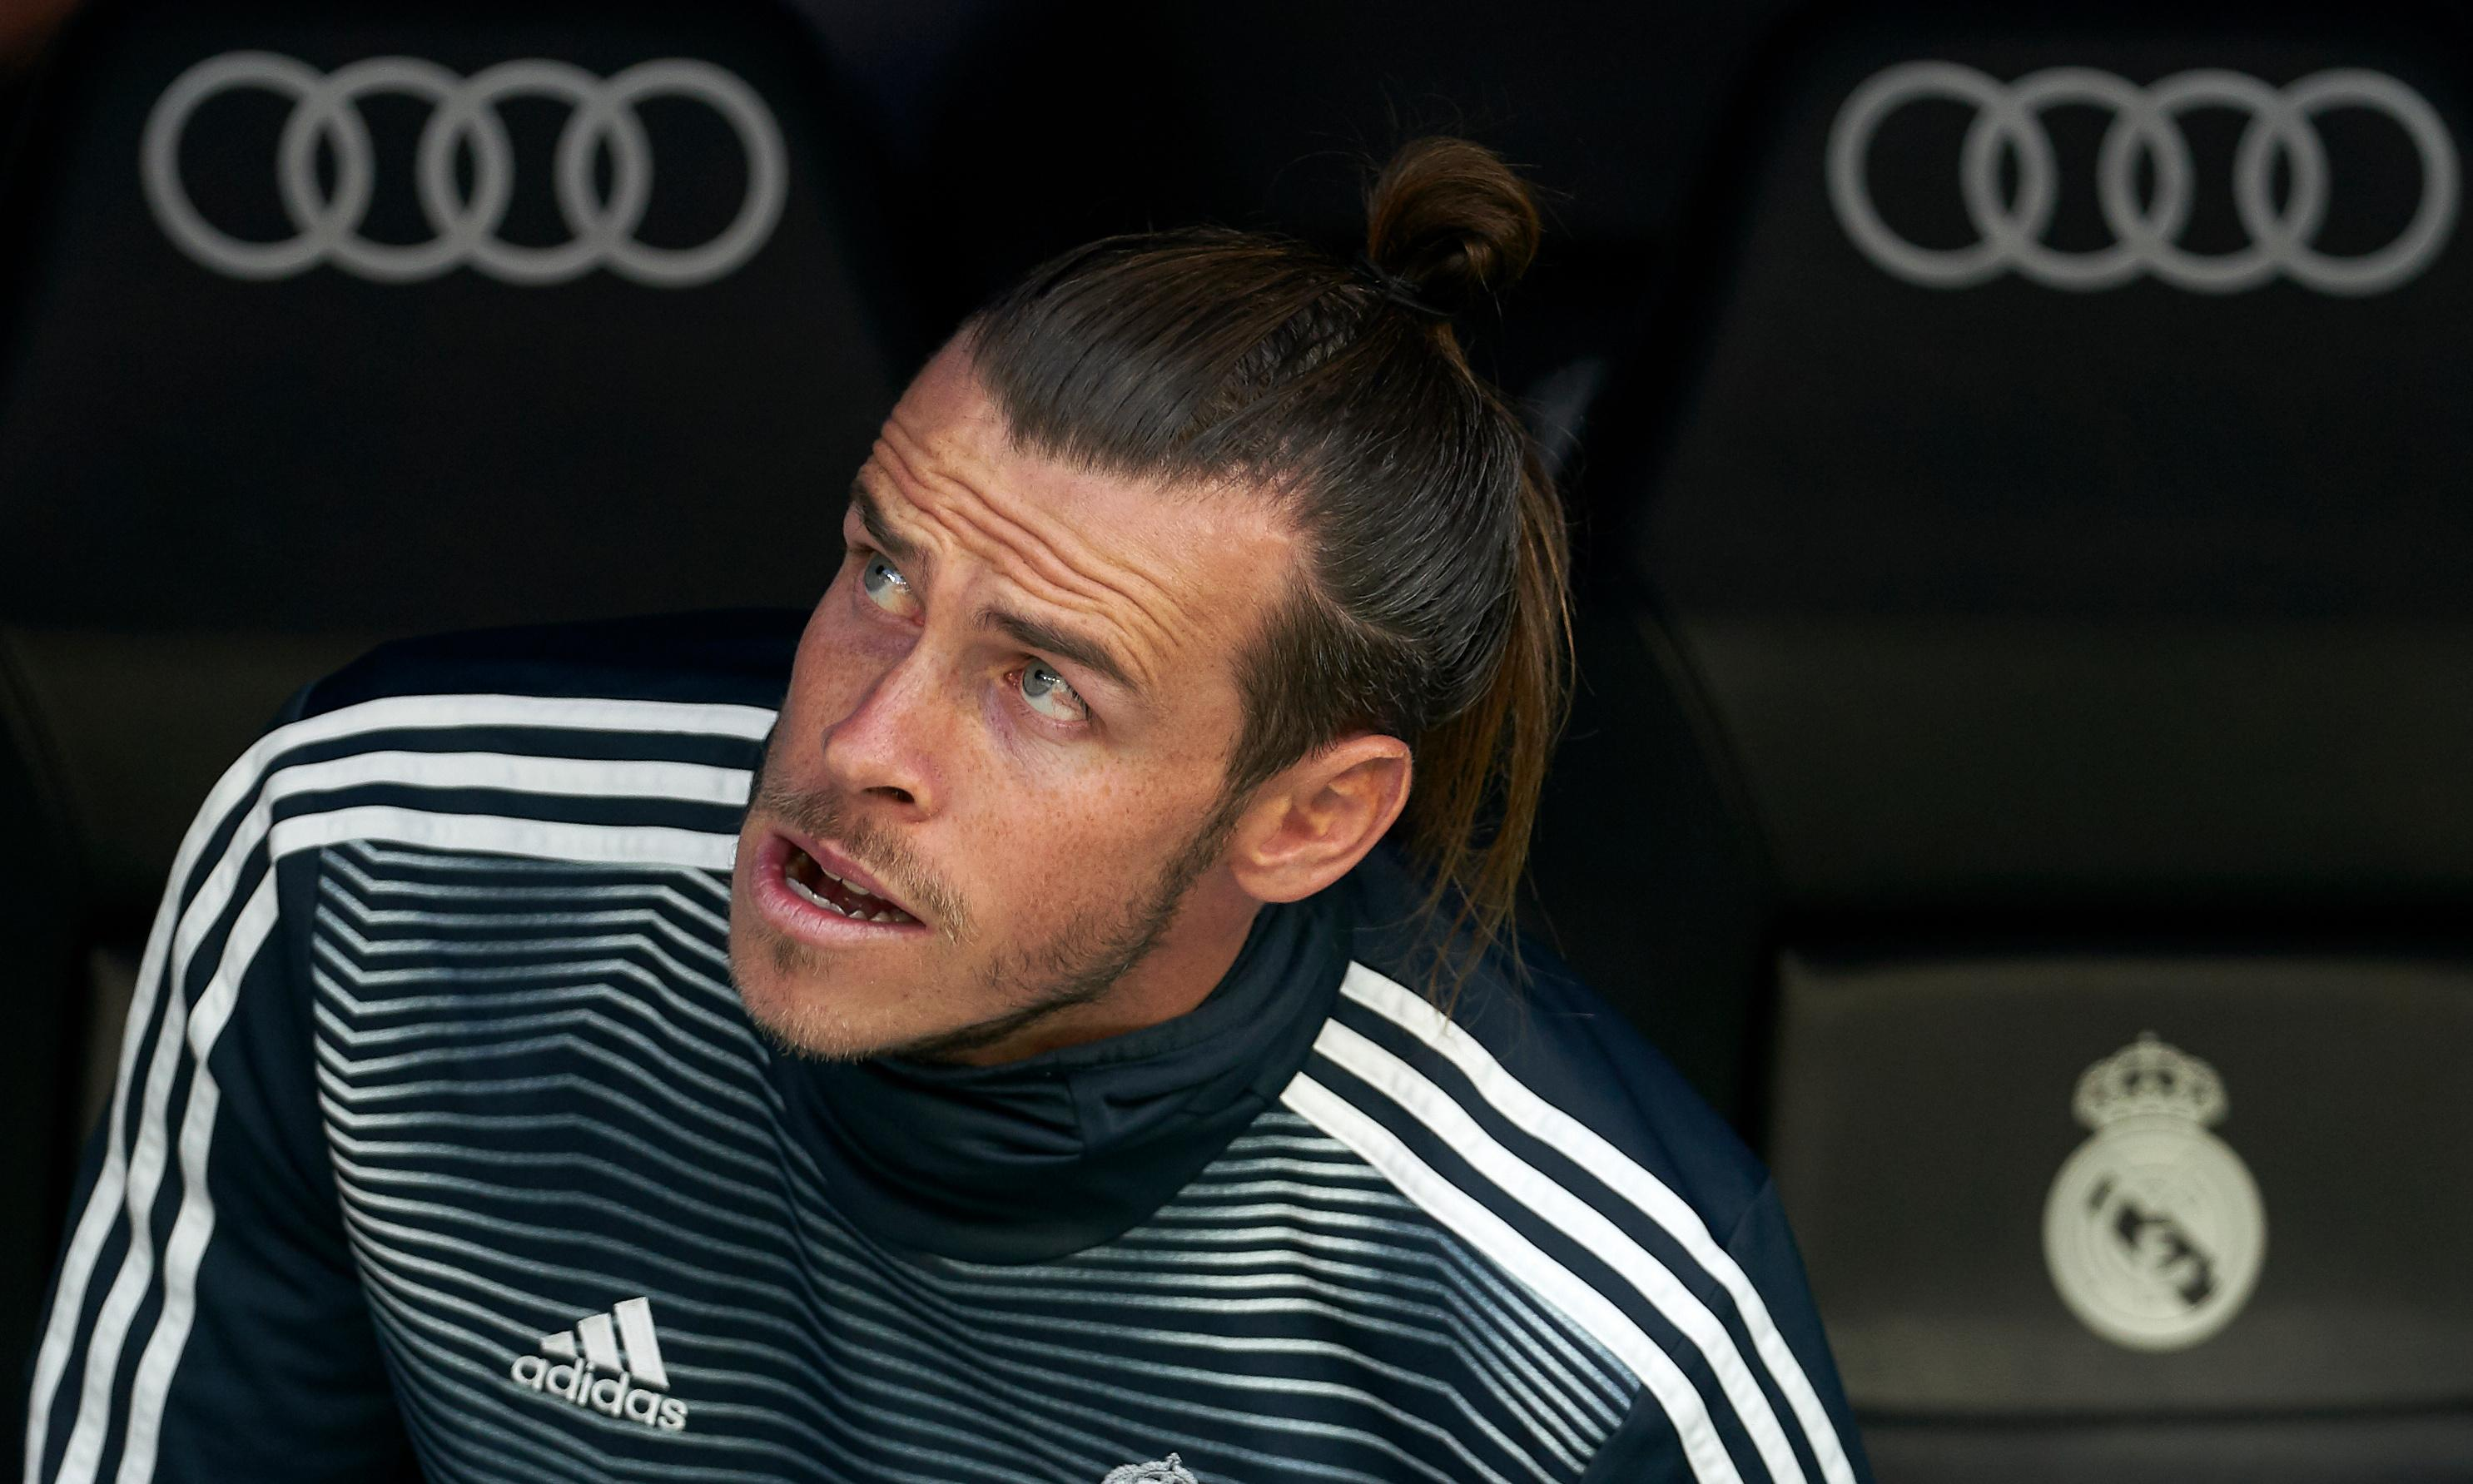 Real Madrid end season with damning defeat and Bale again stewing on bench